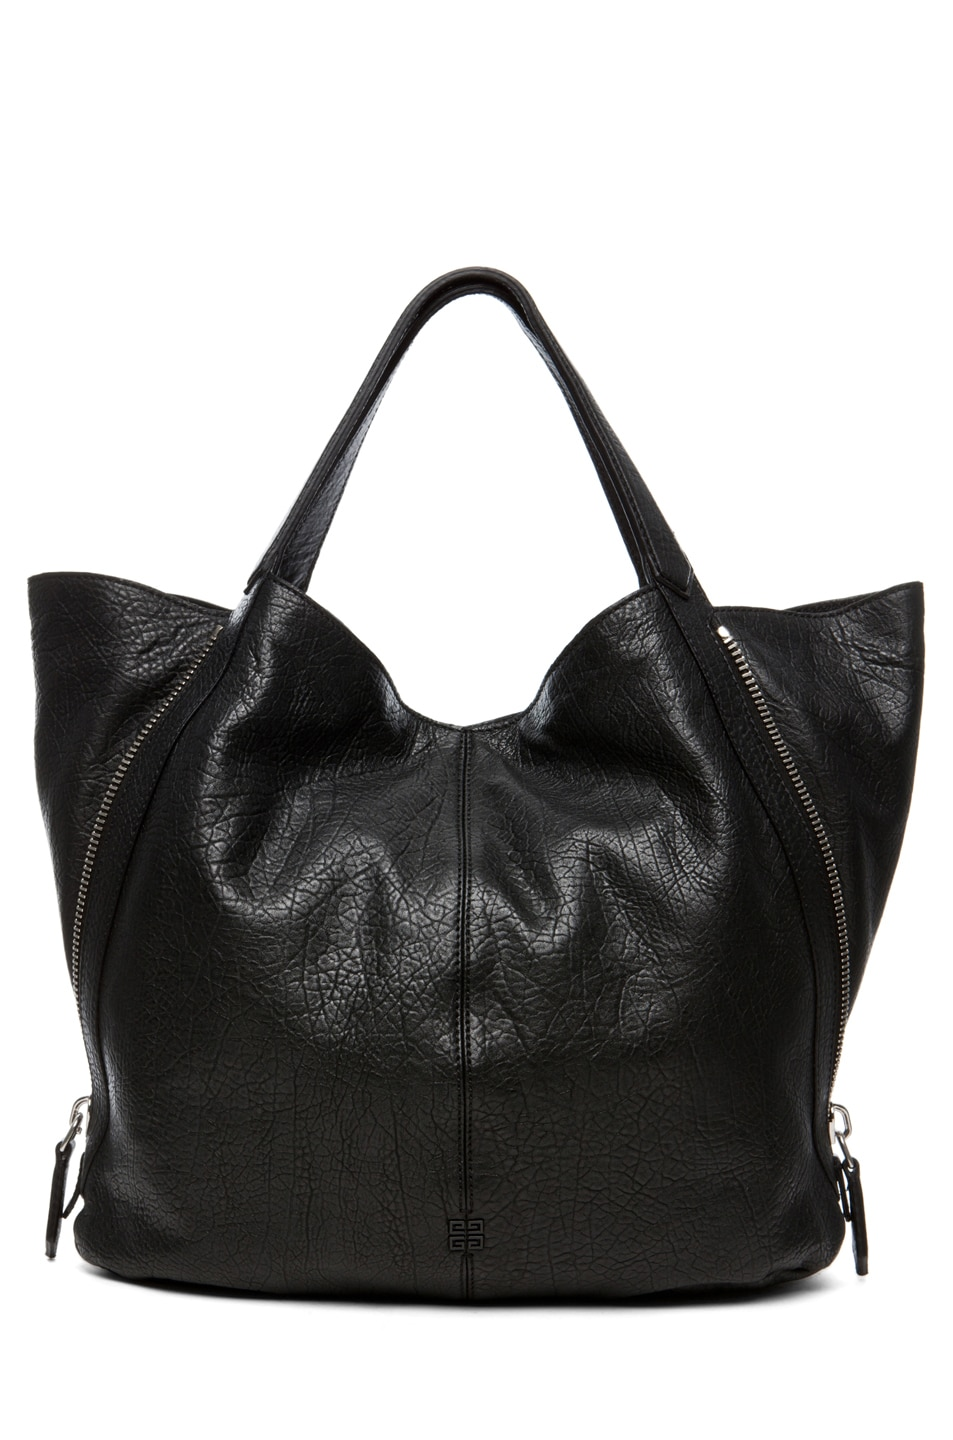 Image 1 of GIVENCHY Large Shopping Bag in Black